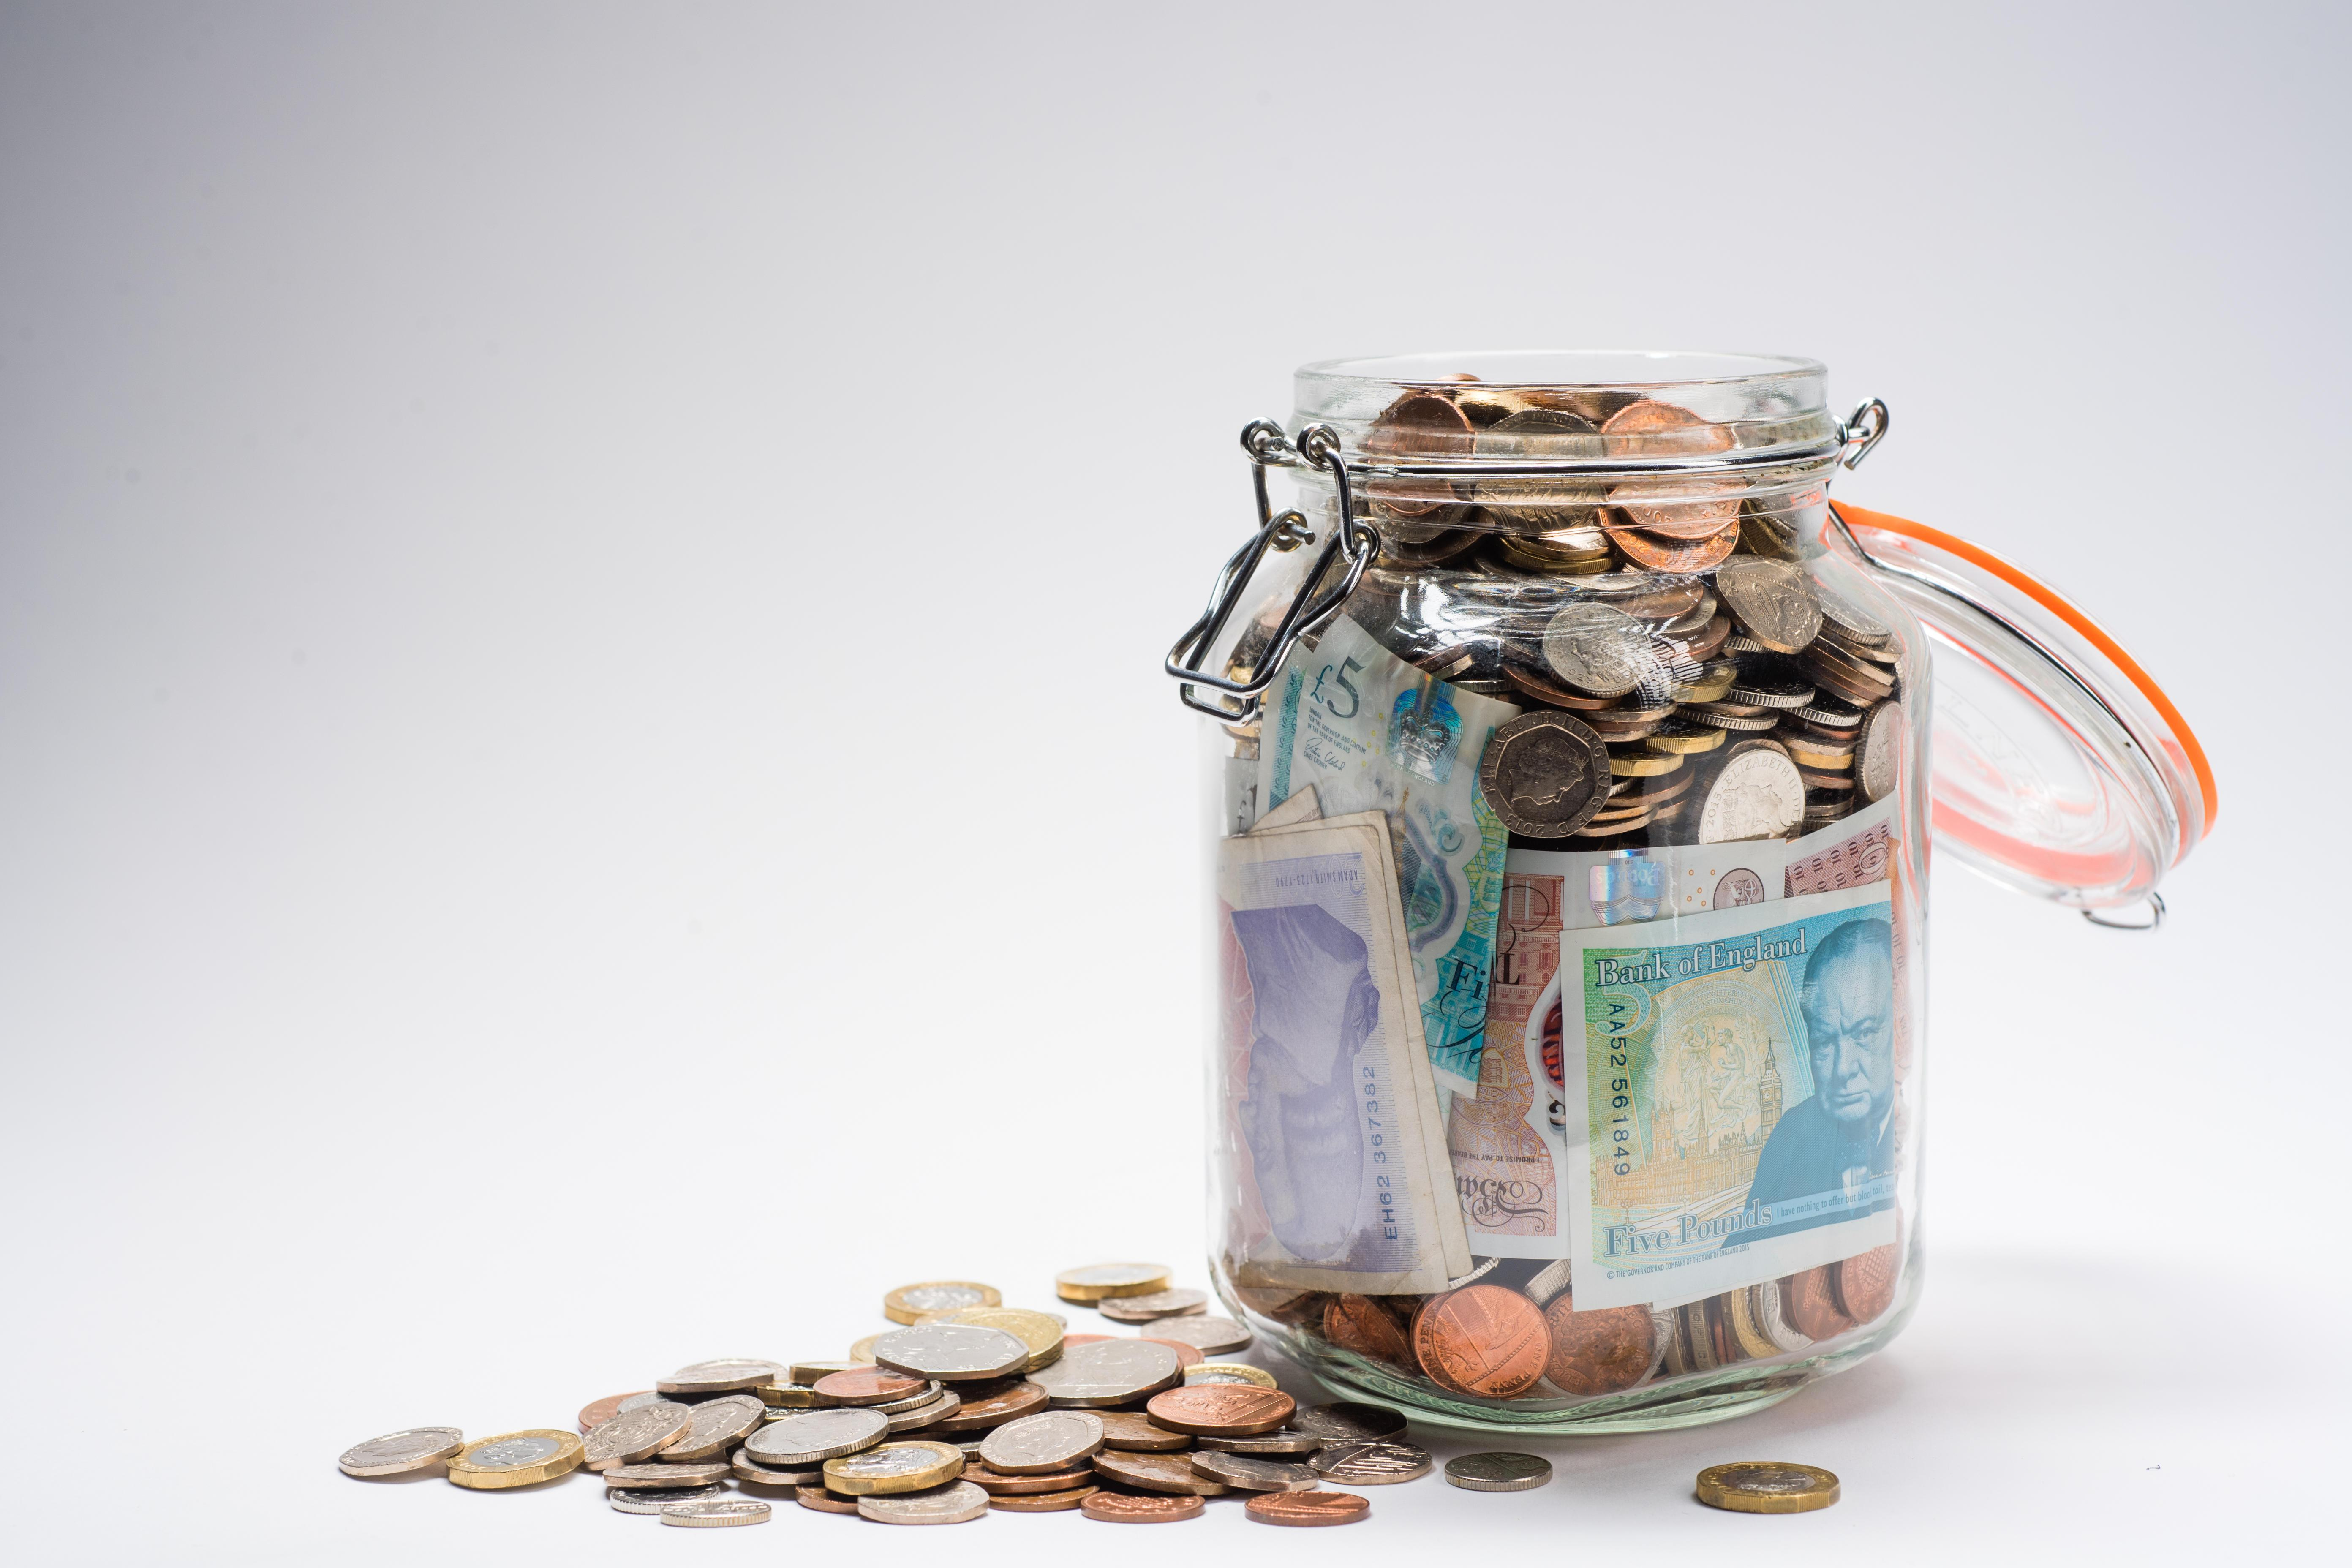 Some Brits will swear by saving up pennies in a jar until they have enough savings